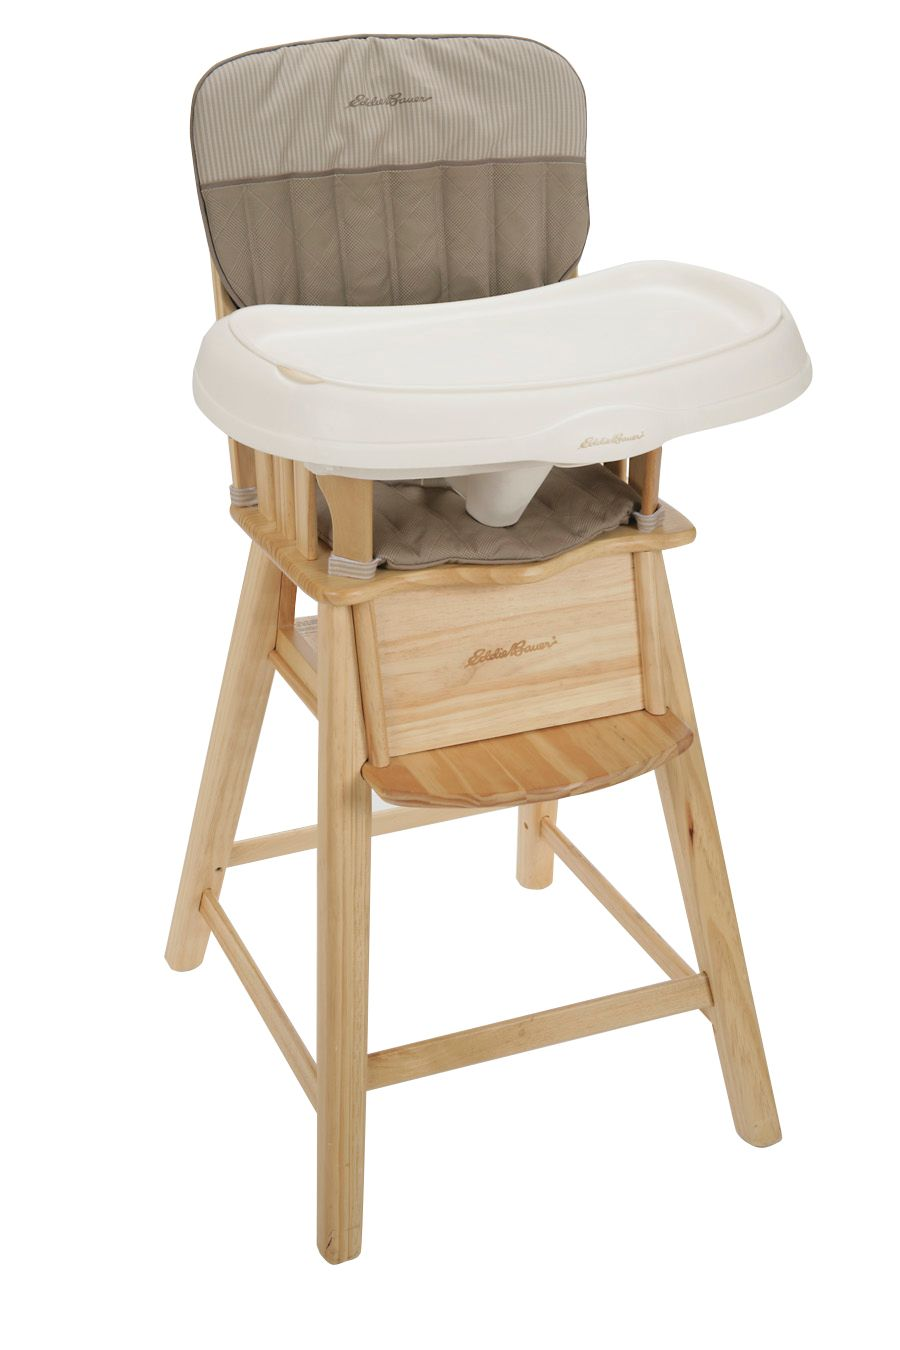 Eddie Bauer Wood High Chair - Sonoma